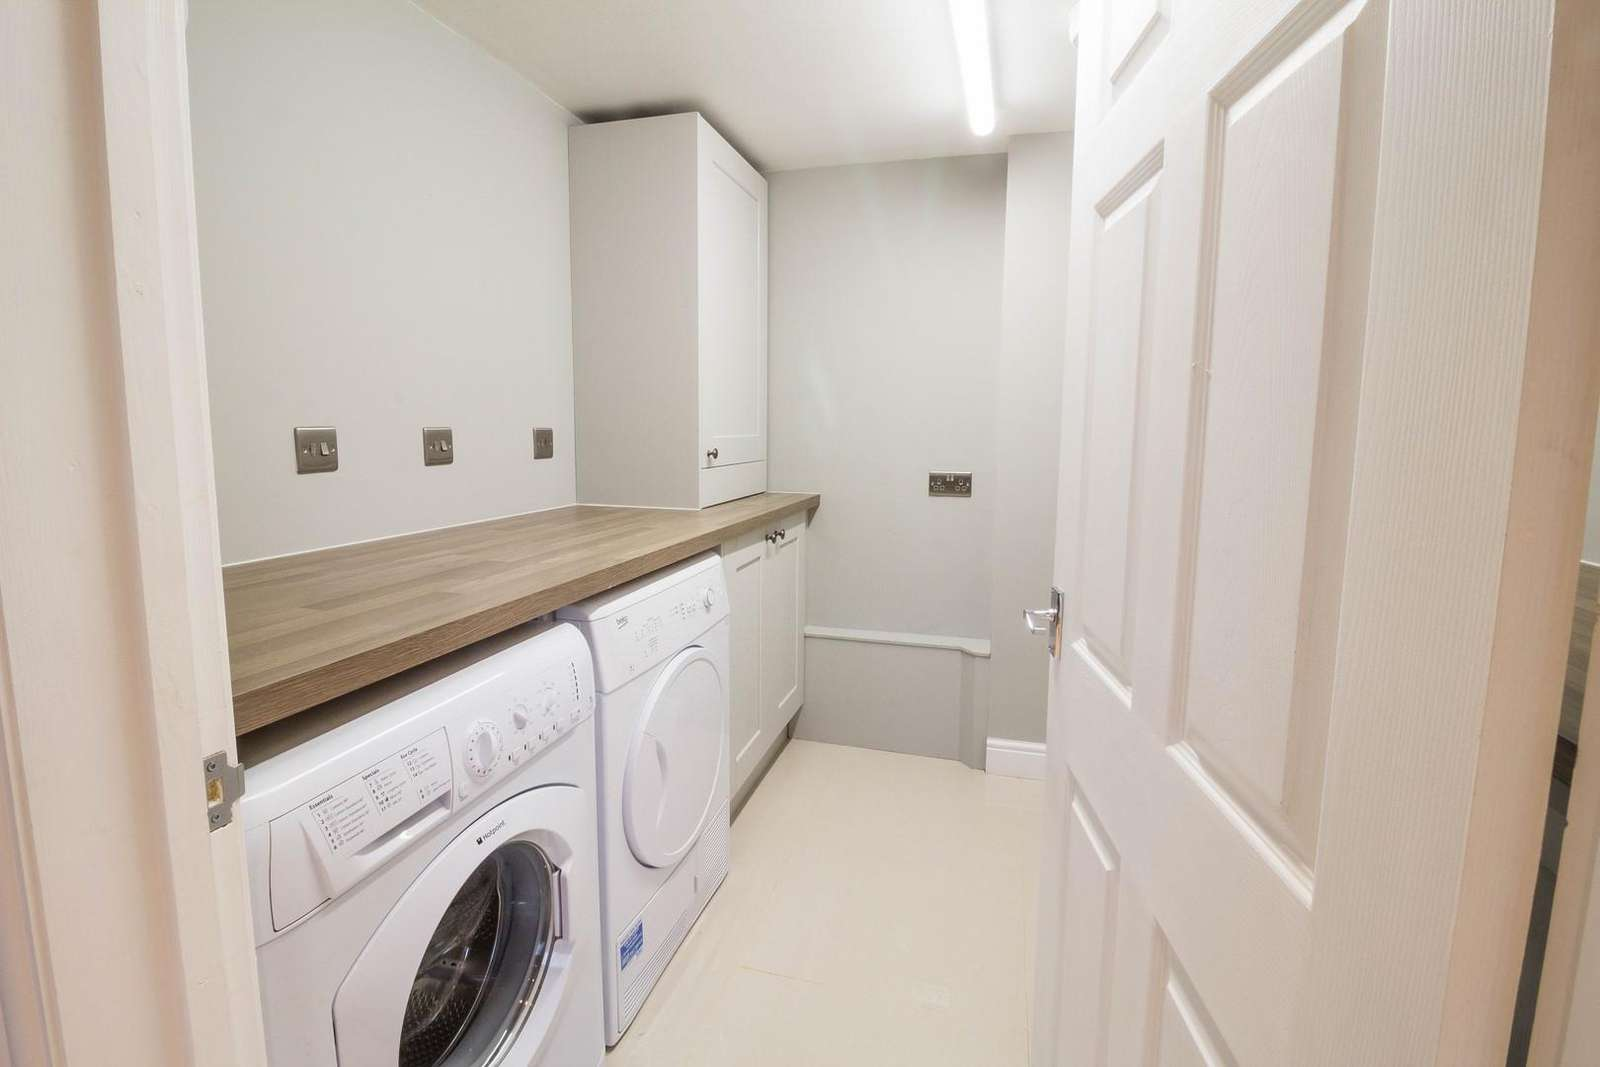 Great storage space in this utility room